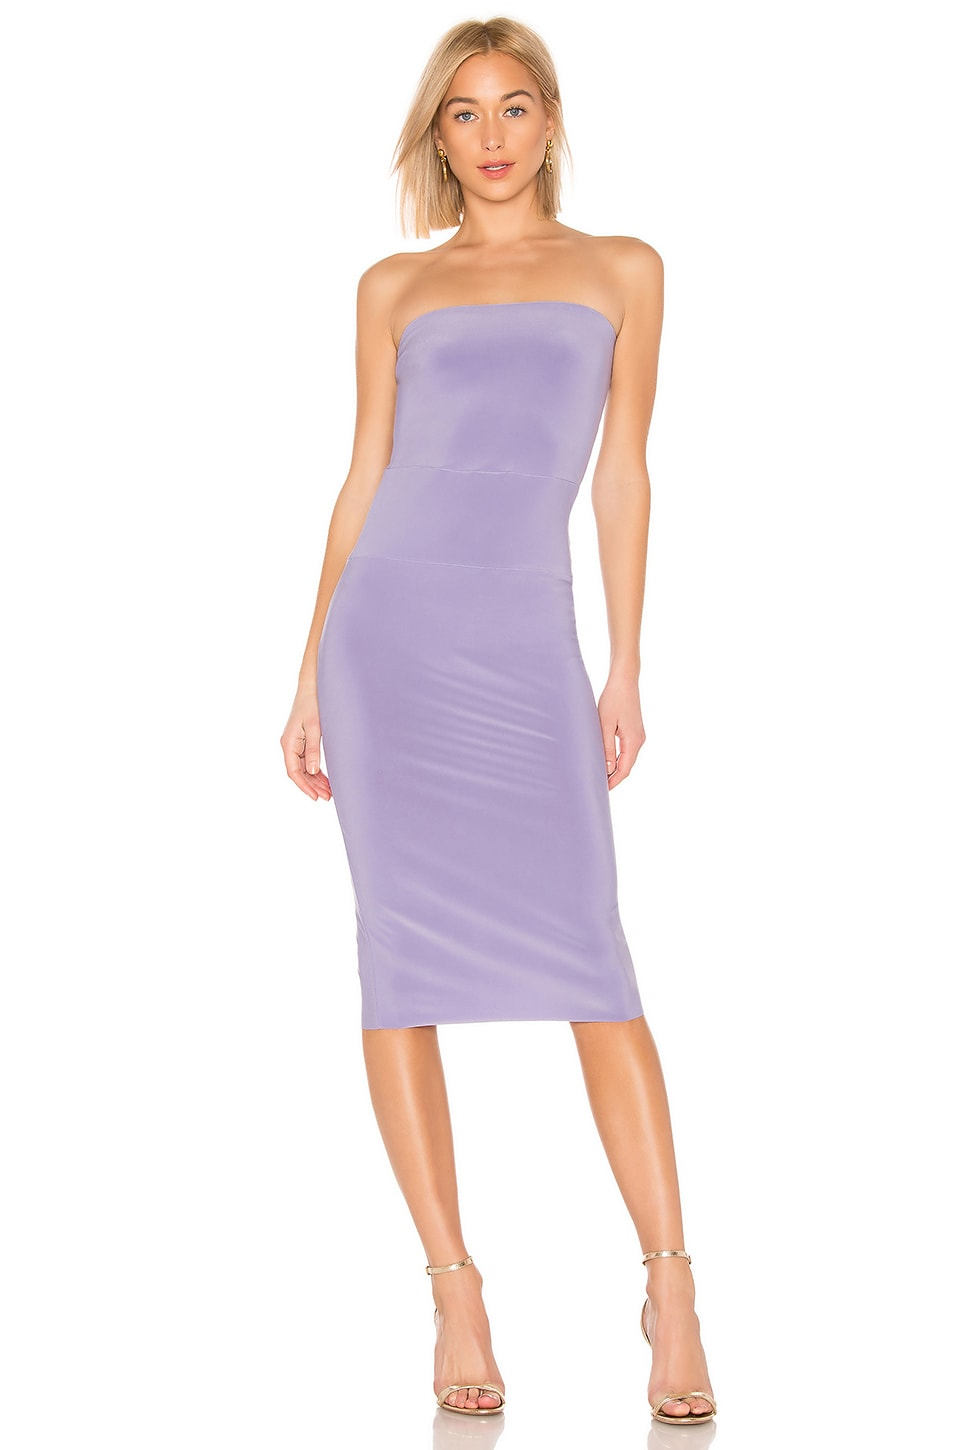 Norma Kamali X REVOLVE Strapless Dress in Lilac